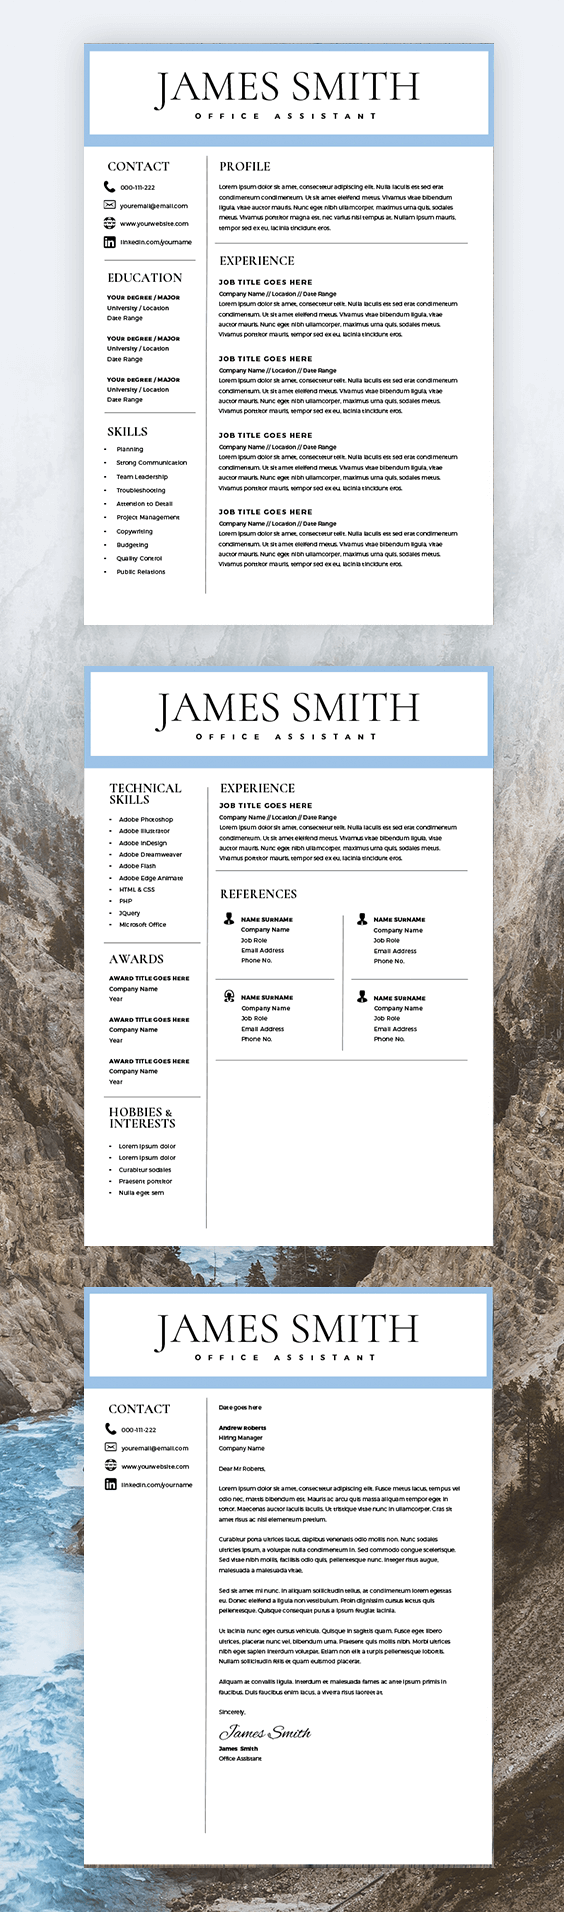 Resume and Cover Letter Writer Of Resume Template for Men Writer Resume Template for Word & Pages 2 Pages Resume Cover Letter Curriculum Vitae Instant Download Cv